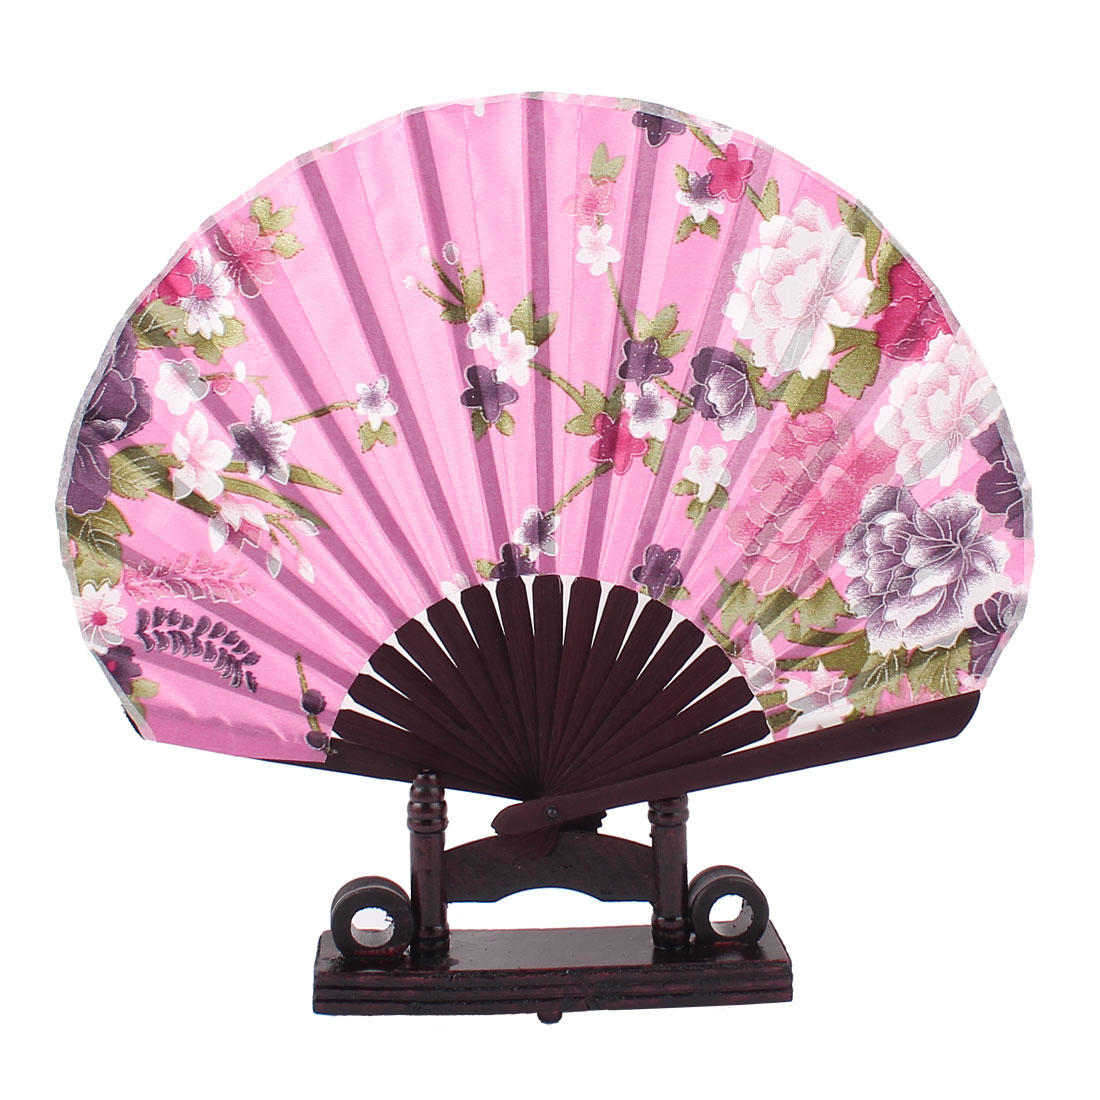 Chinese Wedding Party Favor Peony Print Wood Folding Hand Fan Purple Pink w Holder